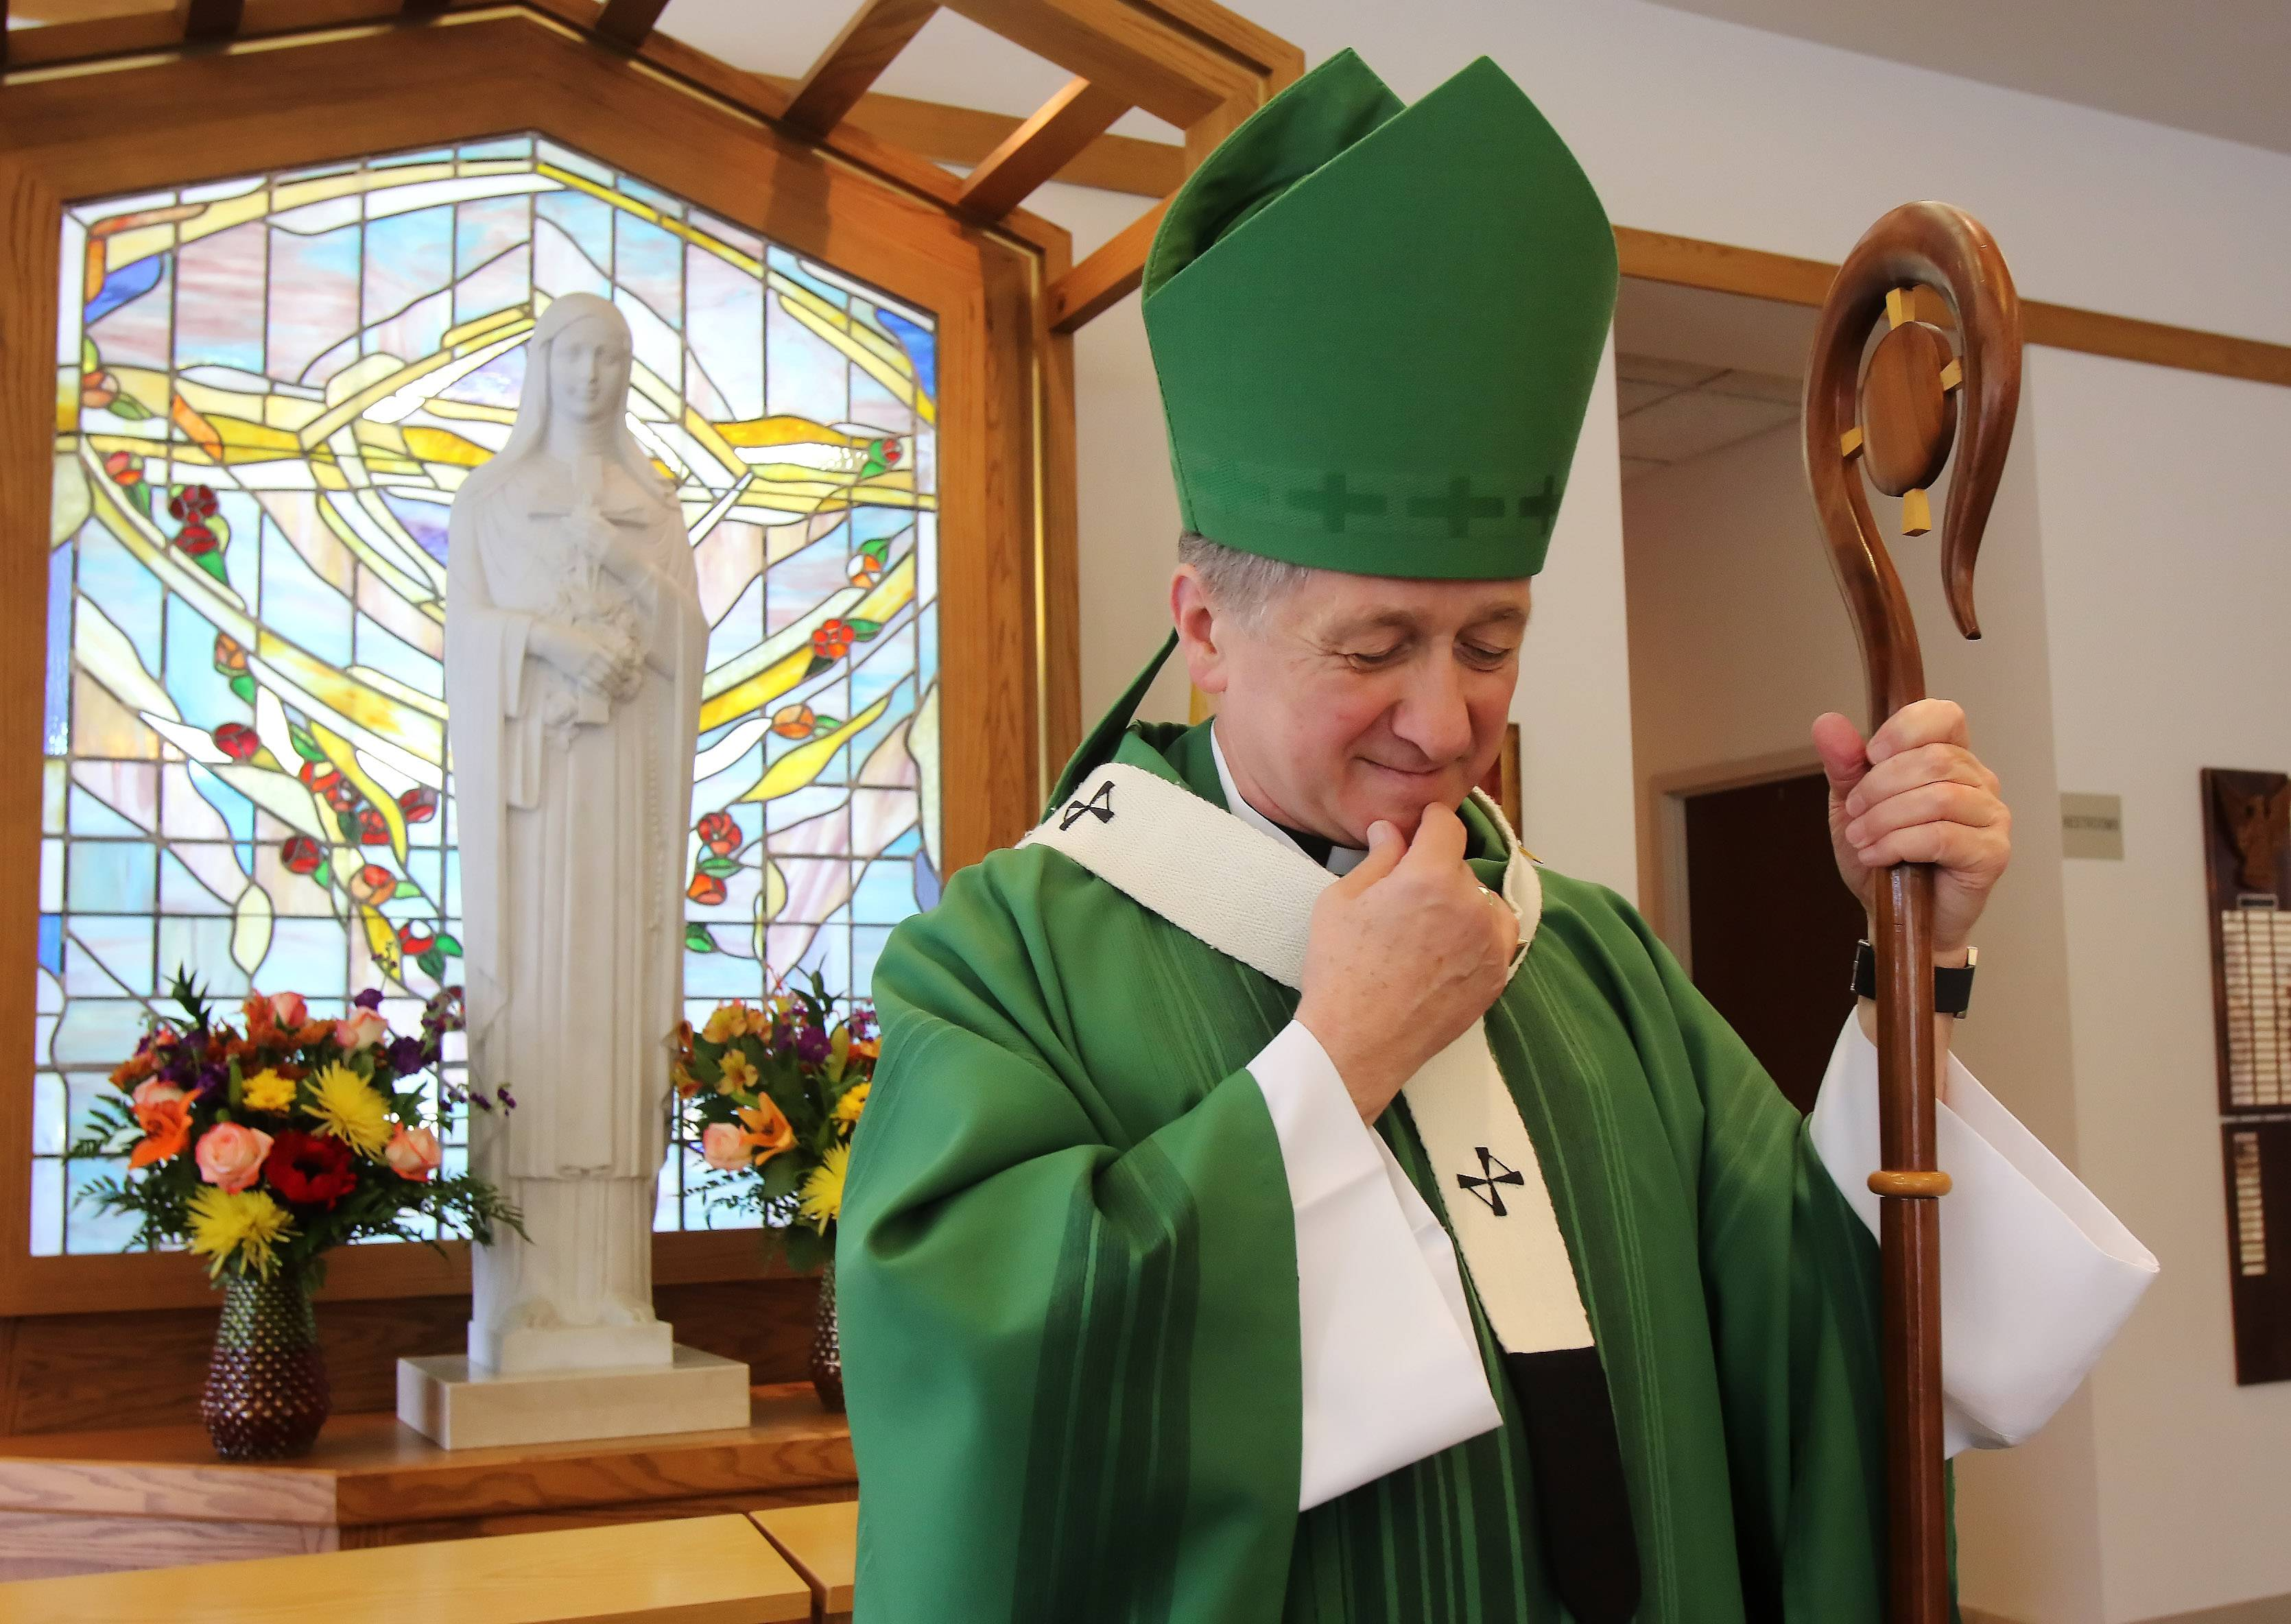 Cardinal-elect Blase Cupich prays before conducting mass at St. Theresa Parish in Palatine on Sunday. St. Theresa is celebrating its 75th anniversary.